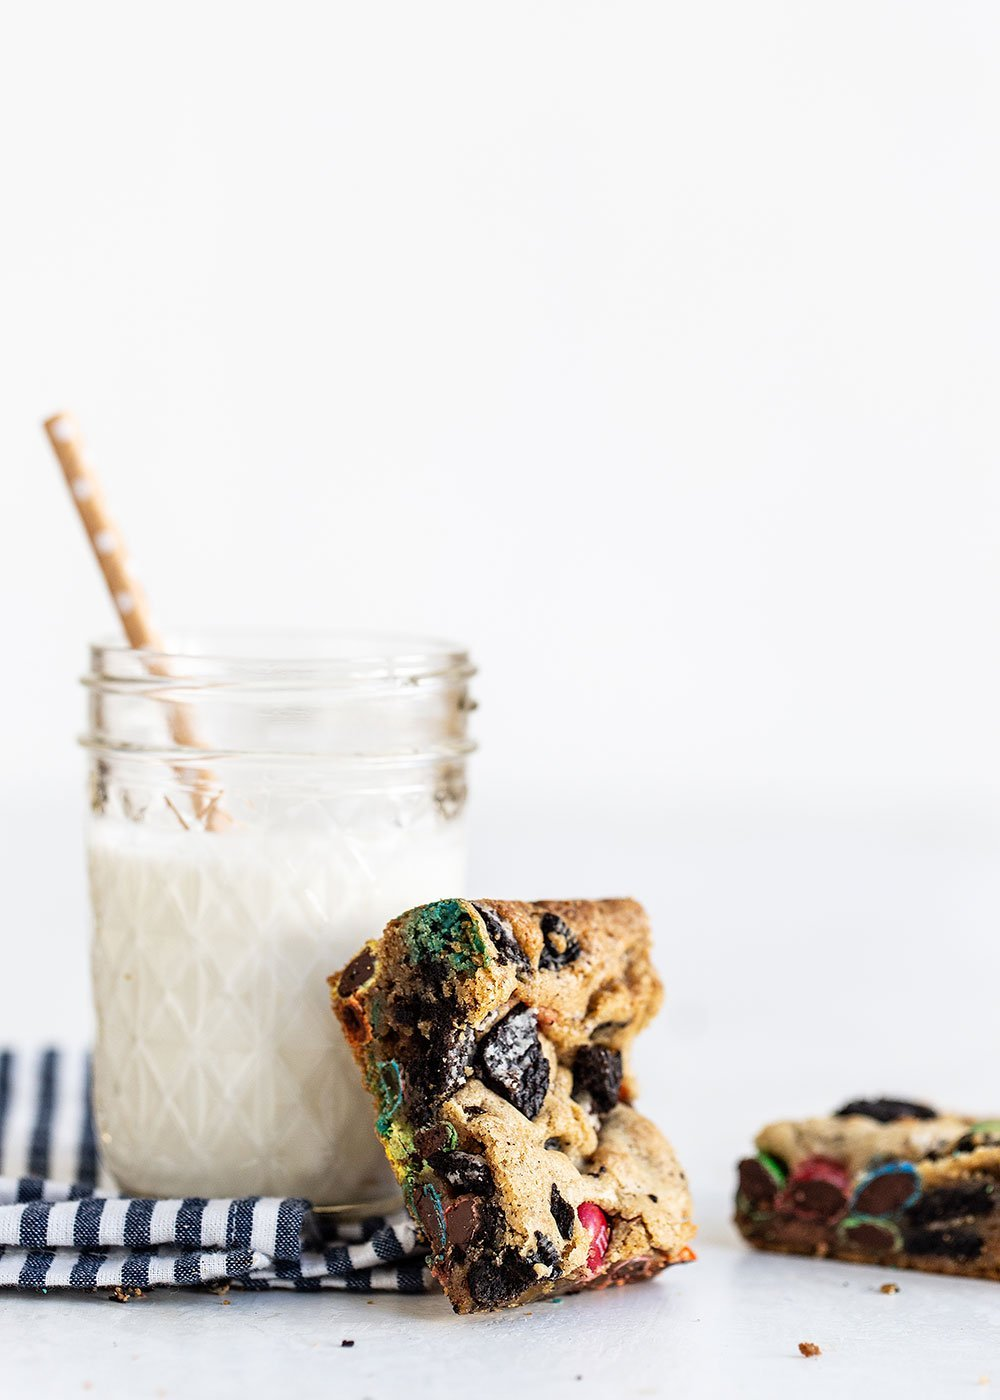 Loaded cookie bar leaning against glass of milk with a straw